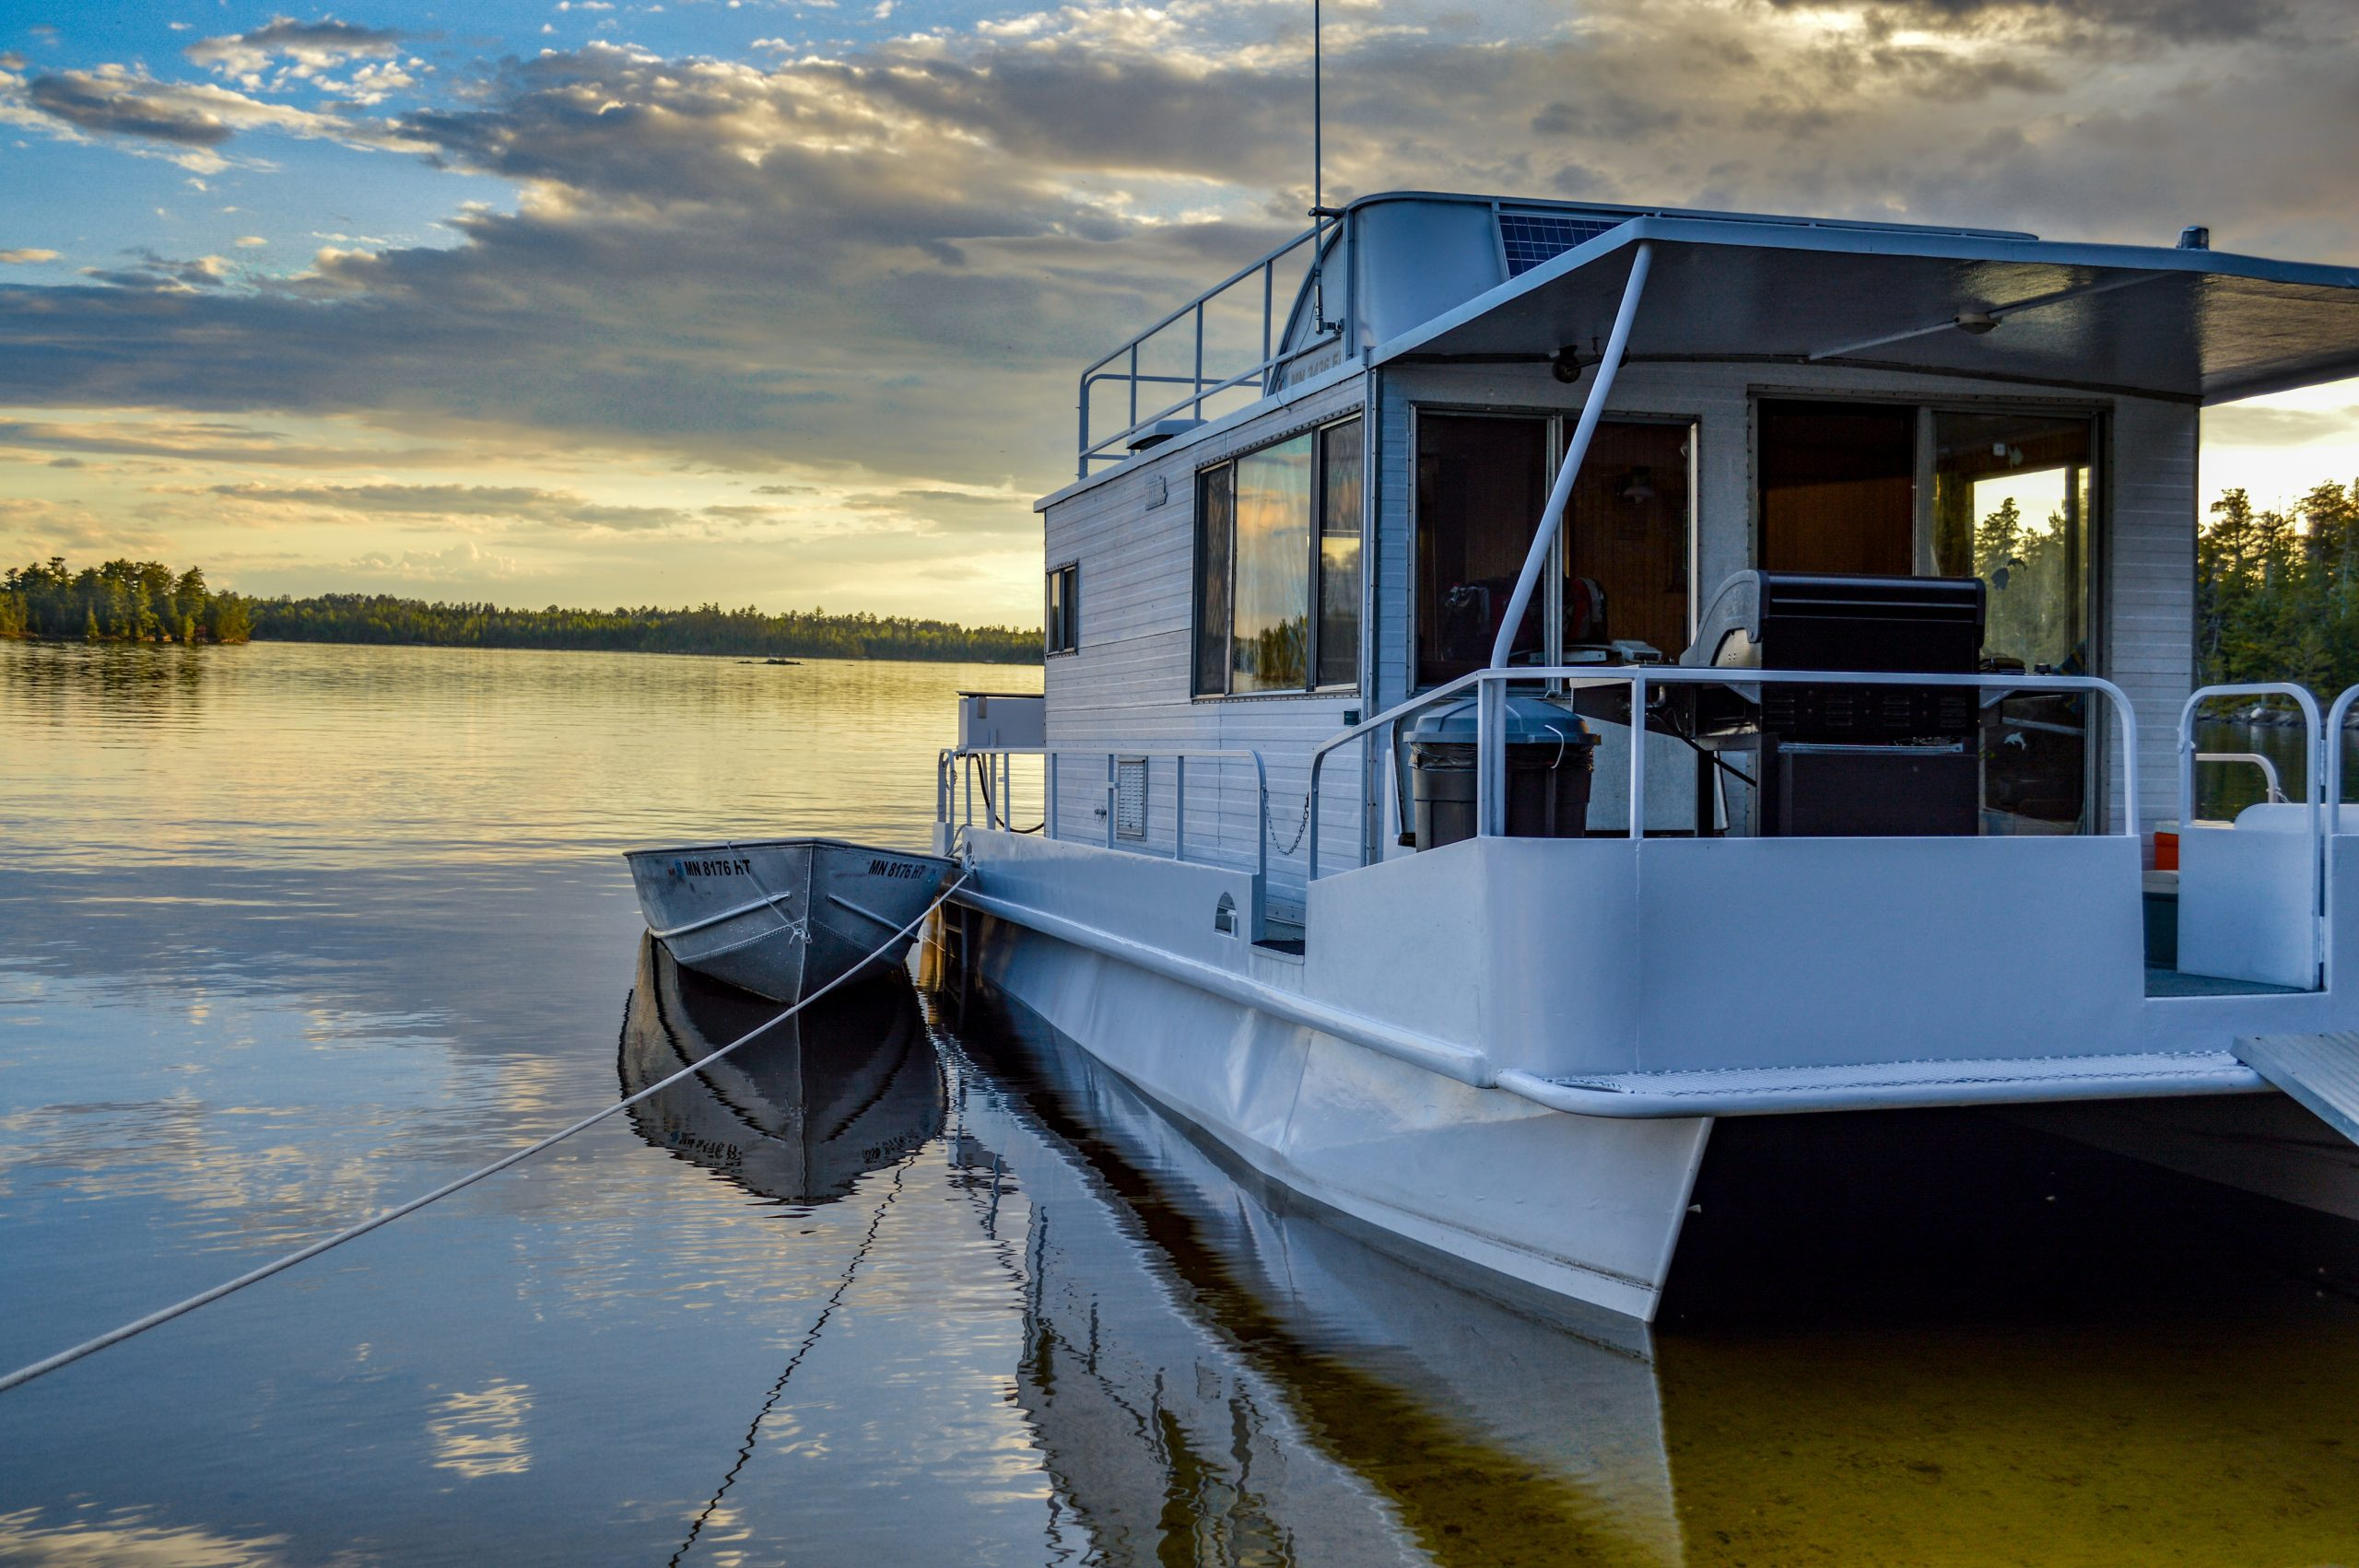 a houseboat on a lake as the sun is setting